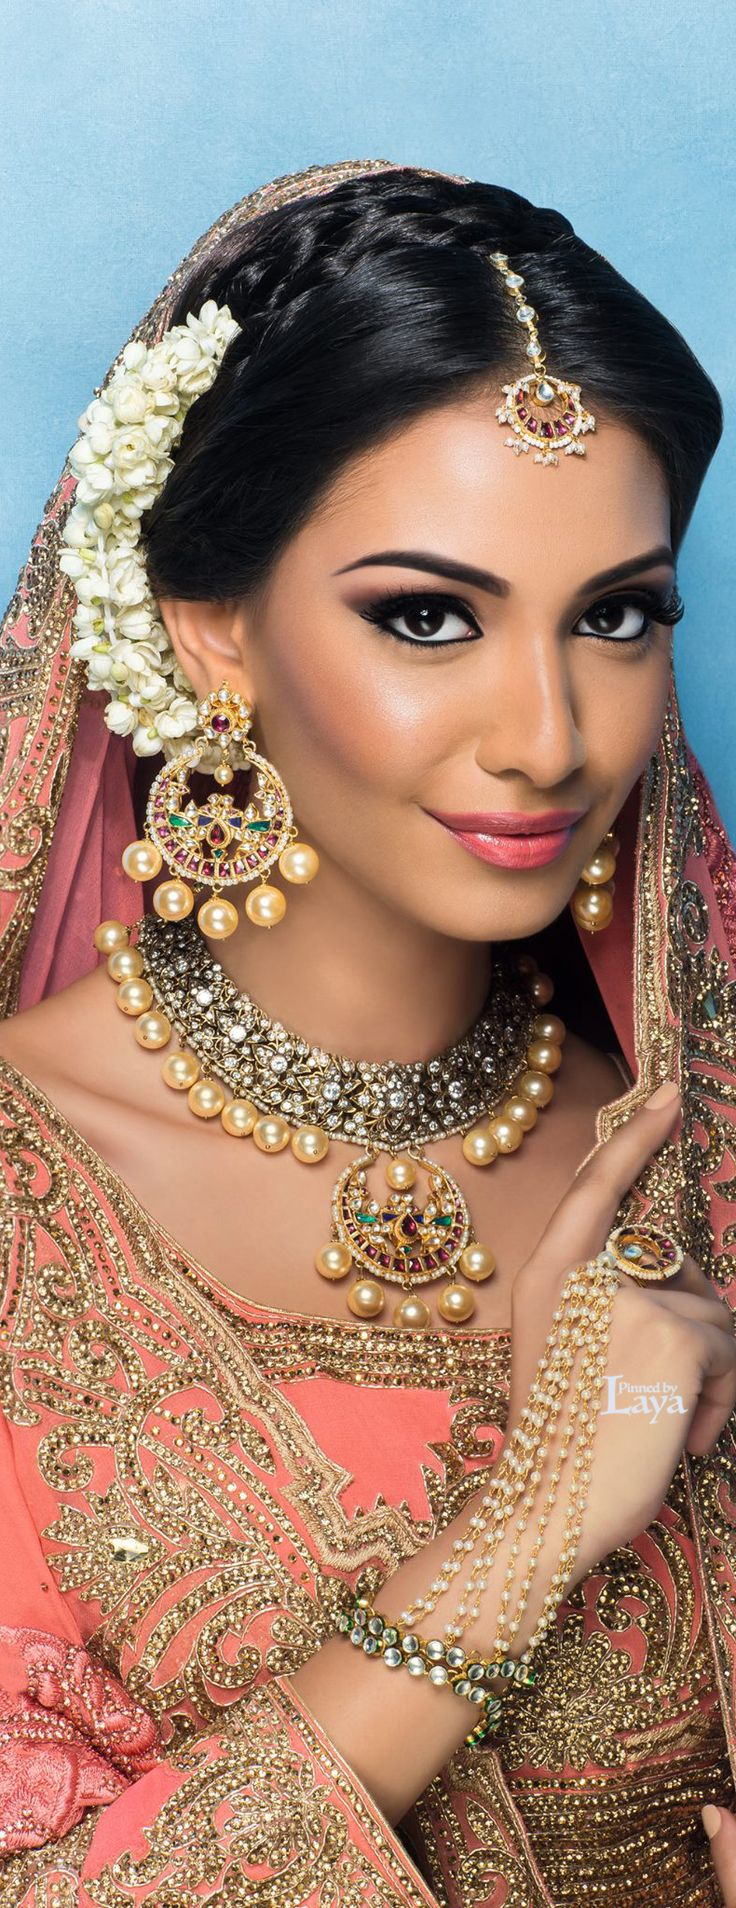 PEARLFECION / Indian Bride❋